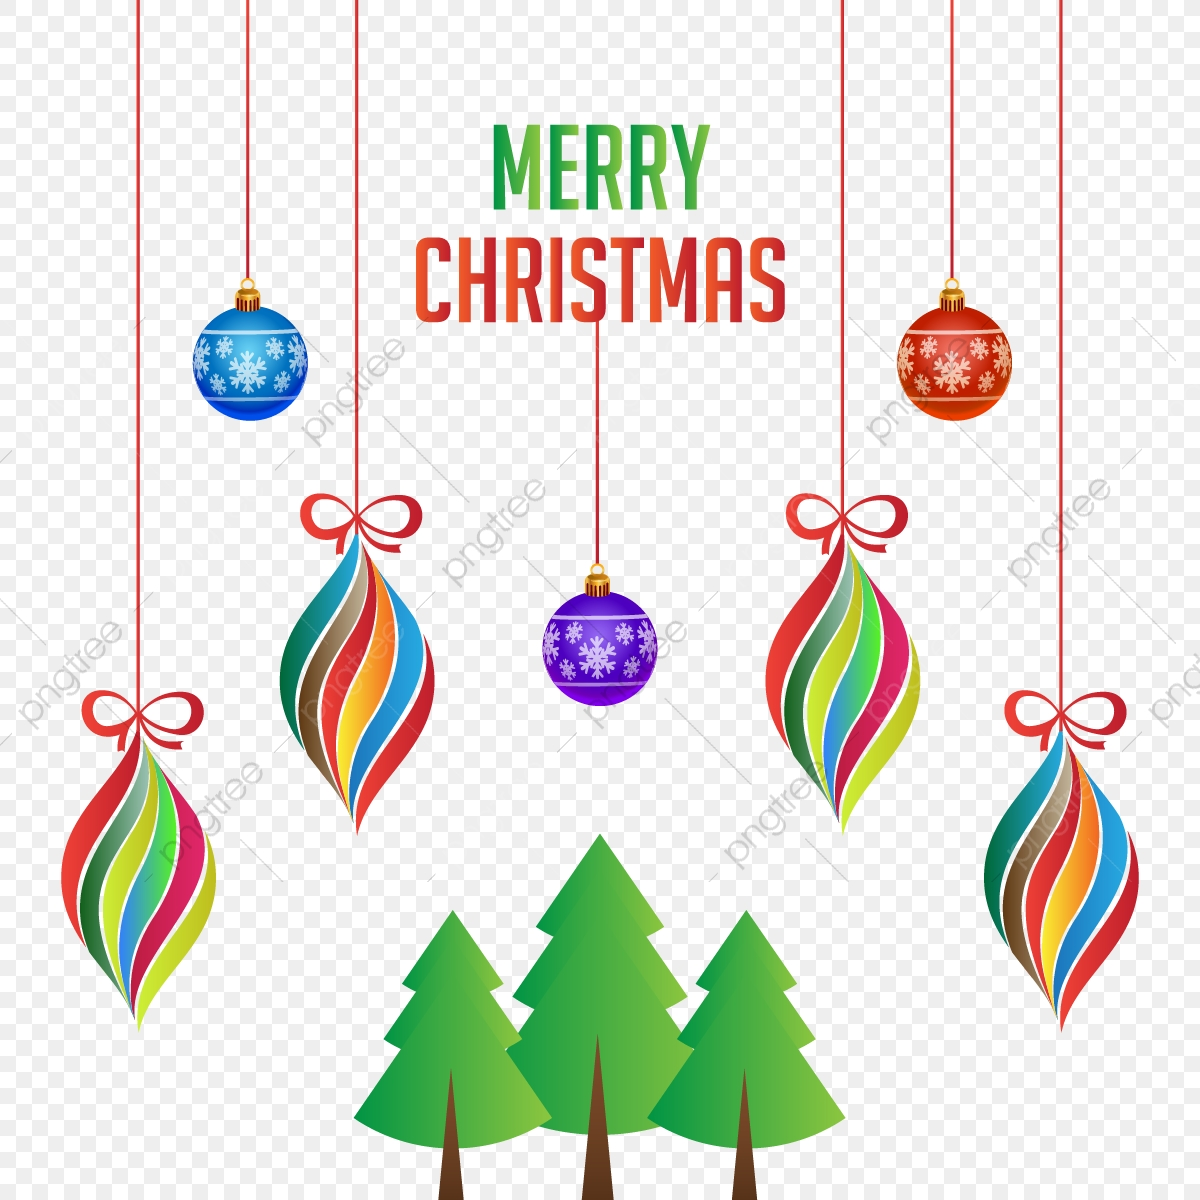 Colorful Christmas Tree Vector.Merry Christmas Colorful Hanging Decoration With Xmas Tree